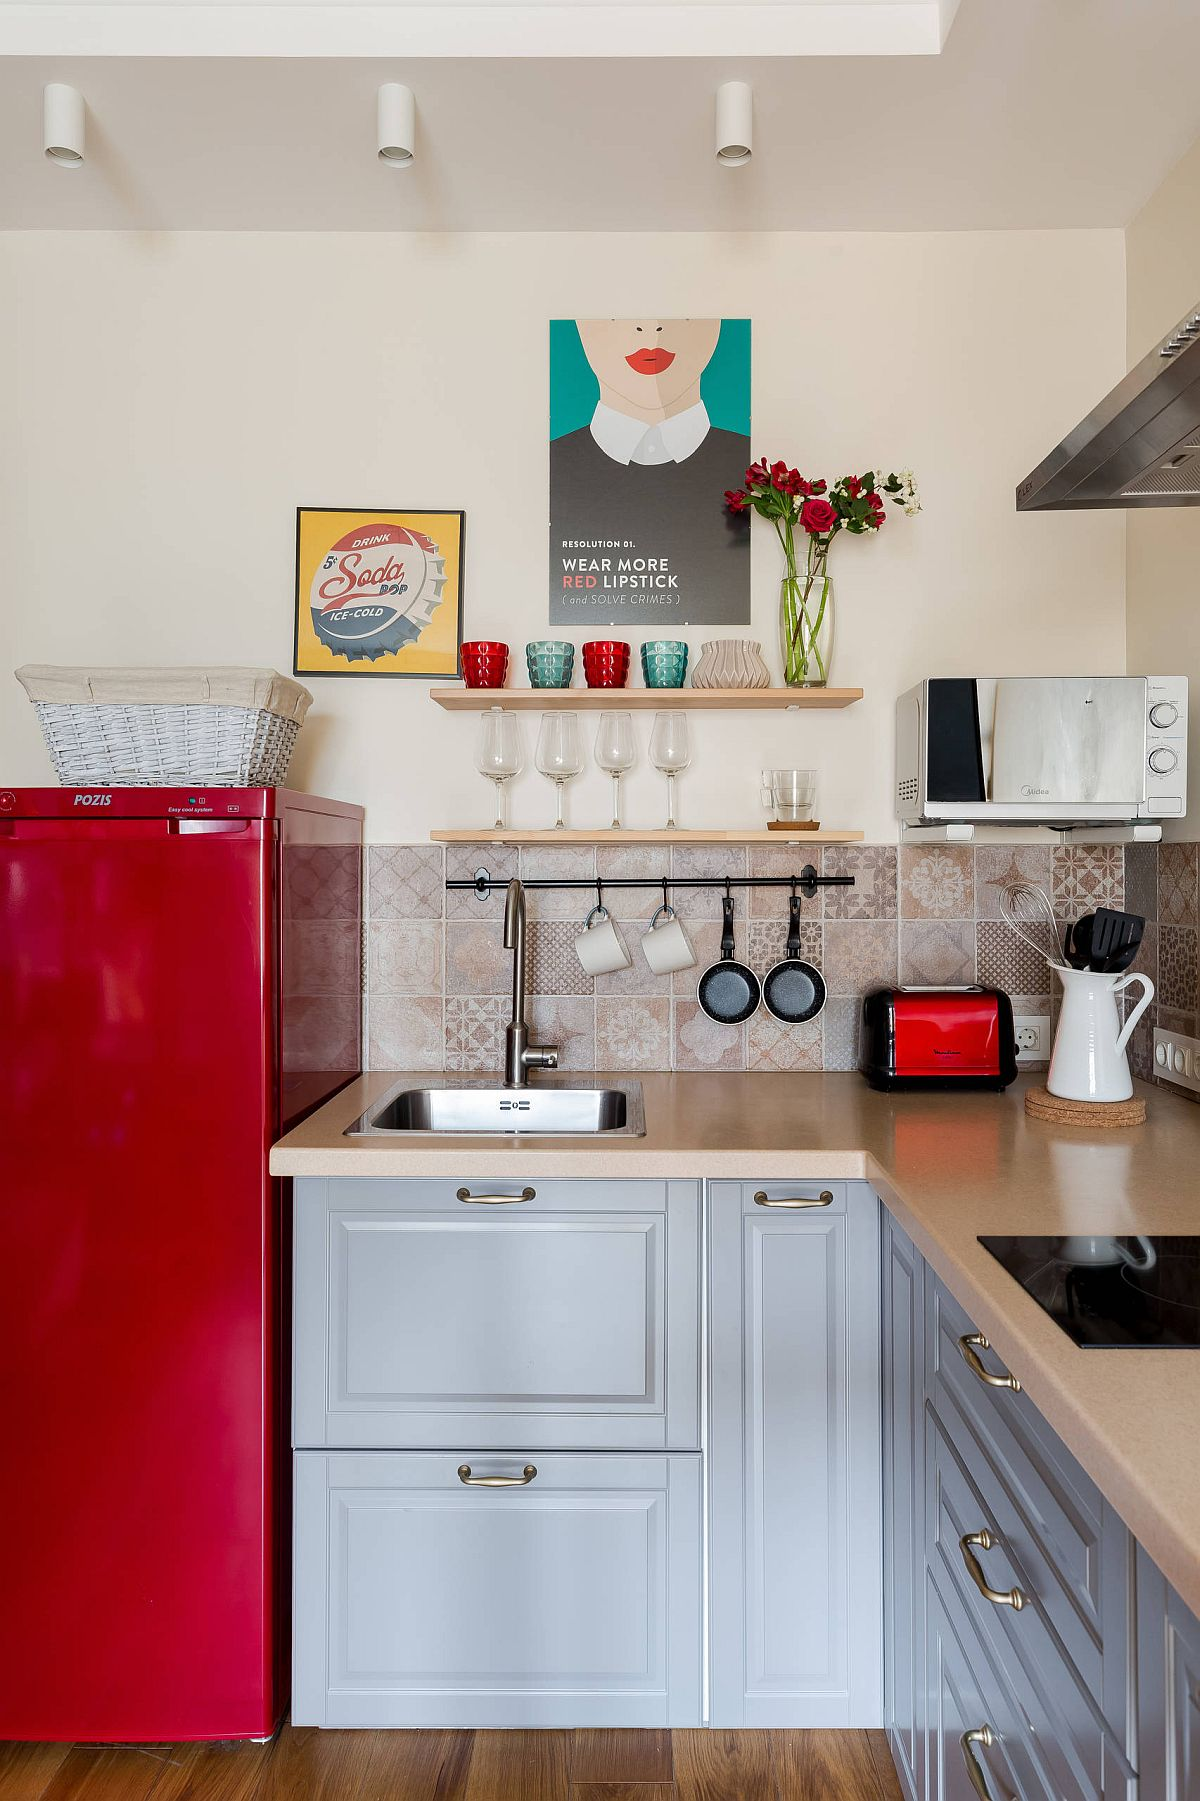 Making-use-of-cirner-space-in-the-tiny-kitchen-with-a-dash-of-red-thrown-into-the-mix-19366